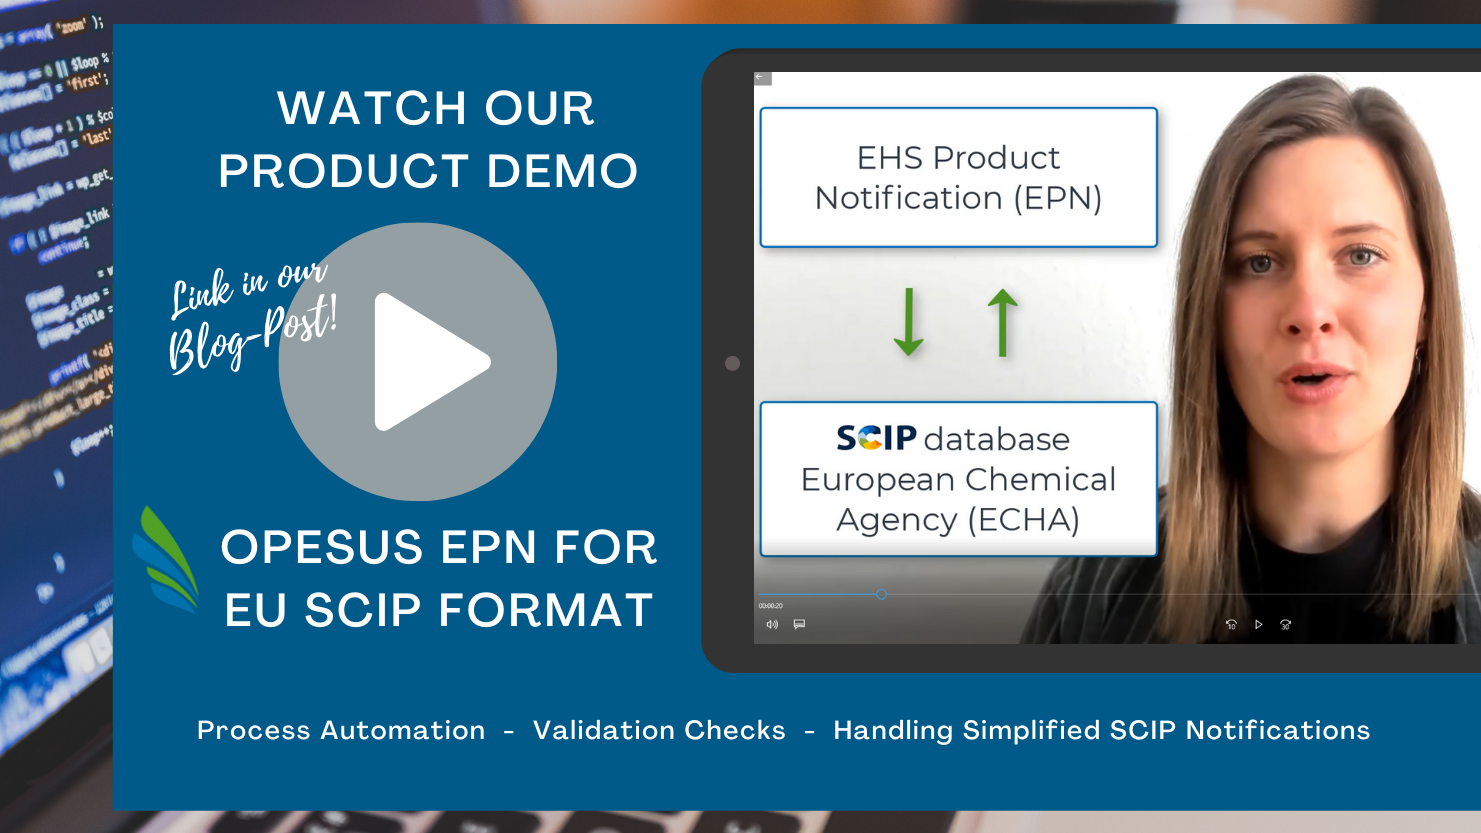 Product Demo EPN for EU SCIP Format